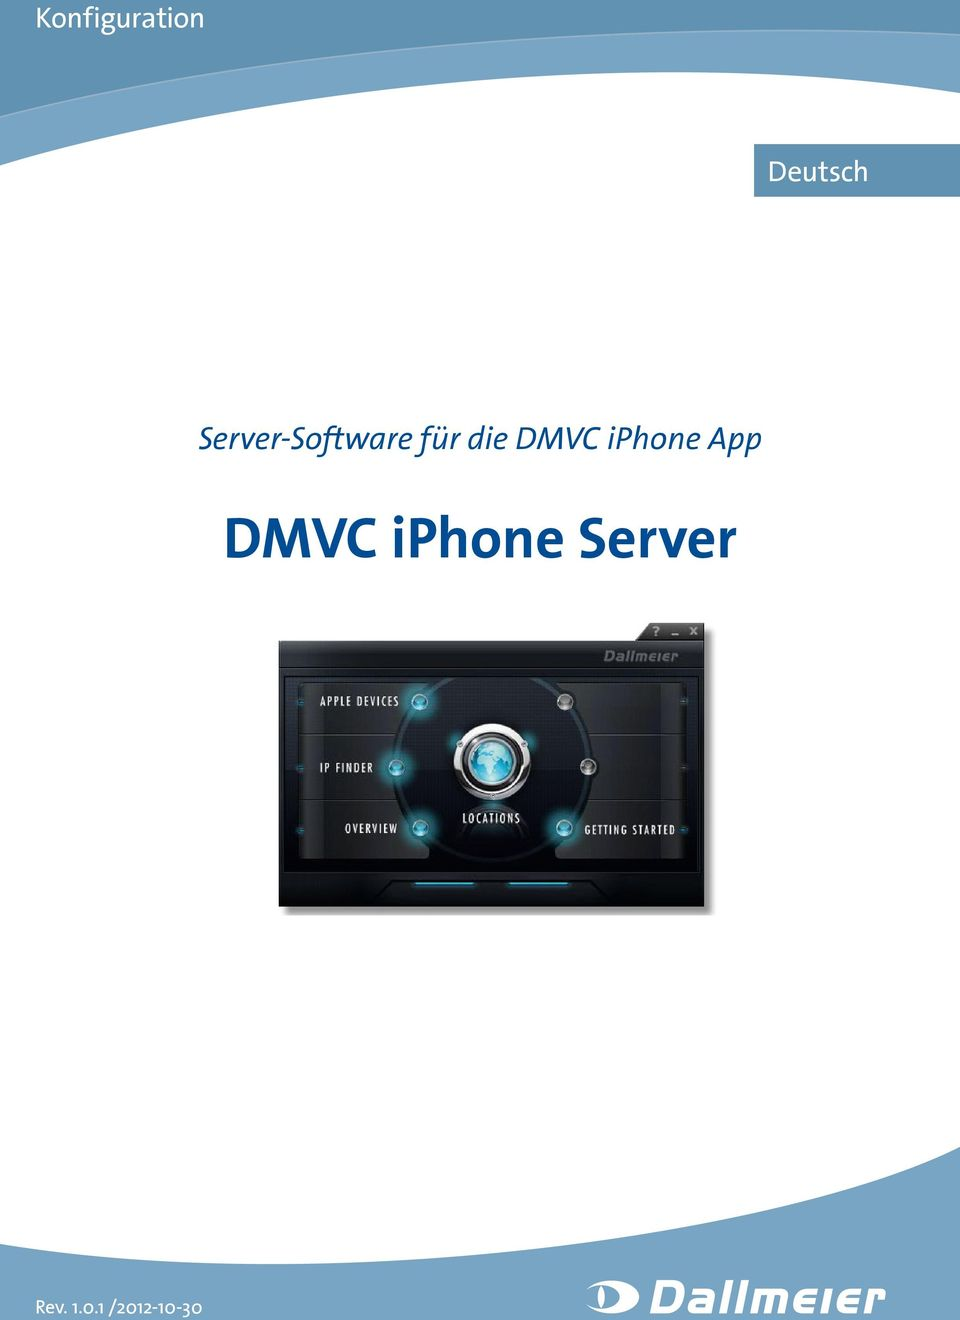 DMVC iphone App DMVC